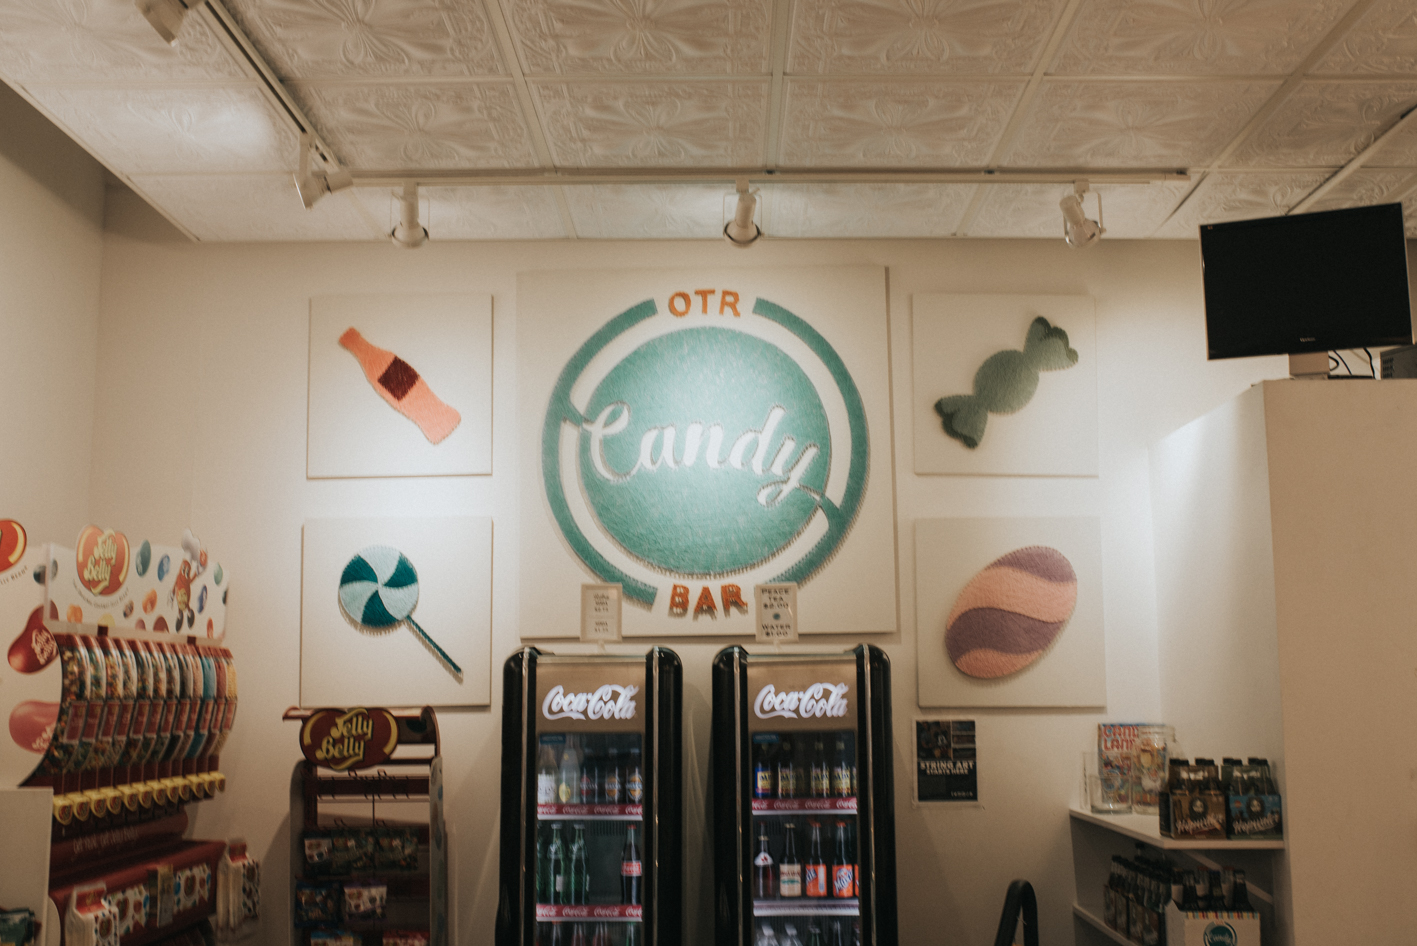 OTR Candy Bar offers both traditionally-made and bulk candy options (selected from local sources and vendors from all over the US), as well as a wide range of sodas. It is located just outside of Findlay Market on Elm Street (across from the streetcar platform). ADDRESS: 1735 Elm St. (45202) / Image: Brianna Long / Published: 6.12.17